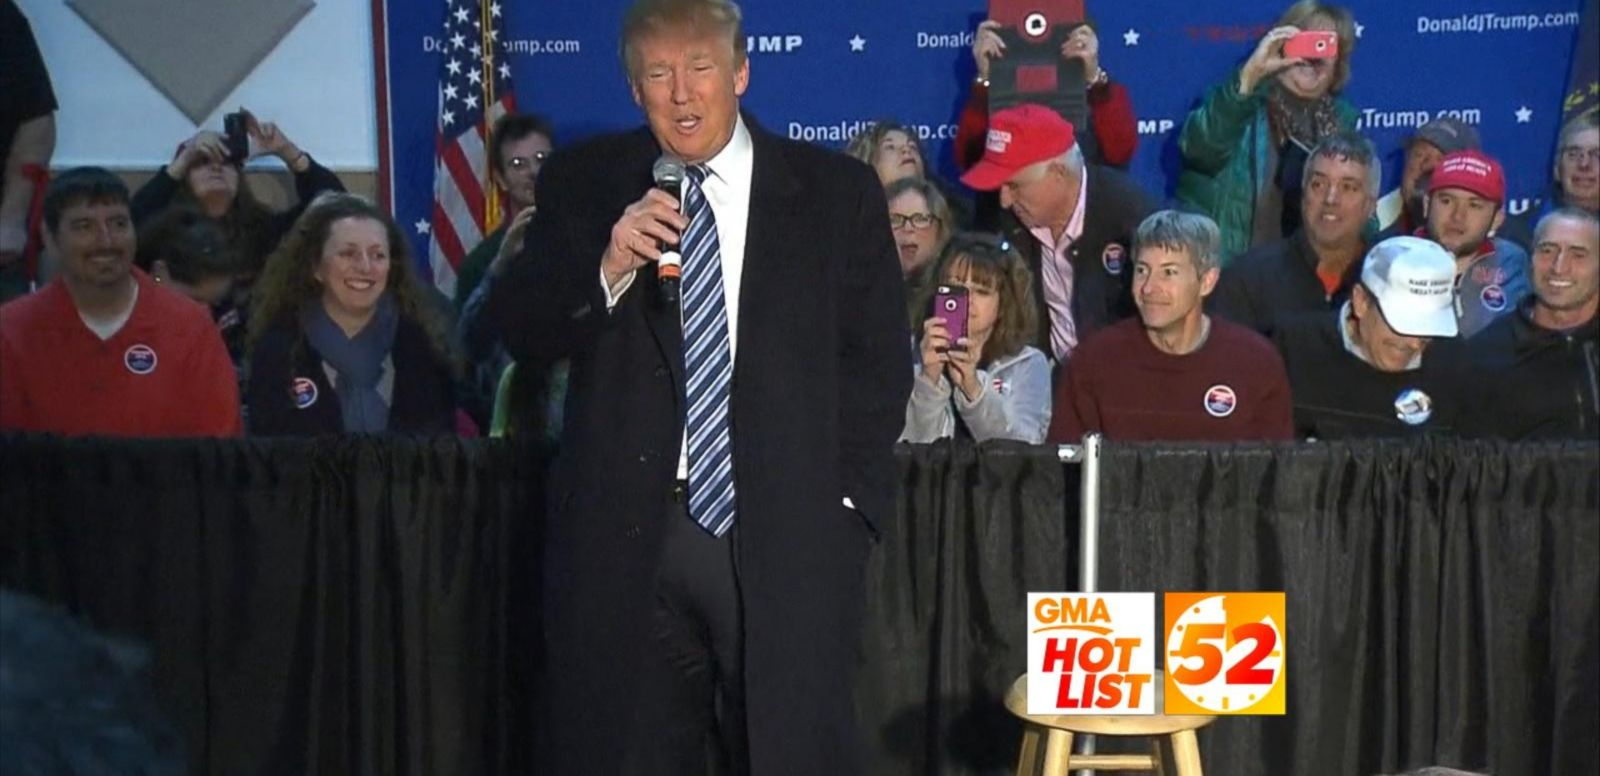 VIDEO: 'GMA' Hot List: Trump on New Hampshire Win, 'Serial' Witness Speaks Out